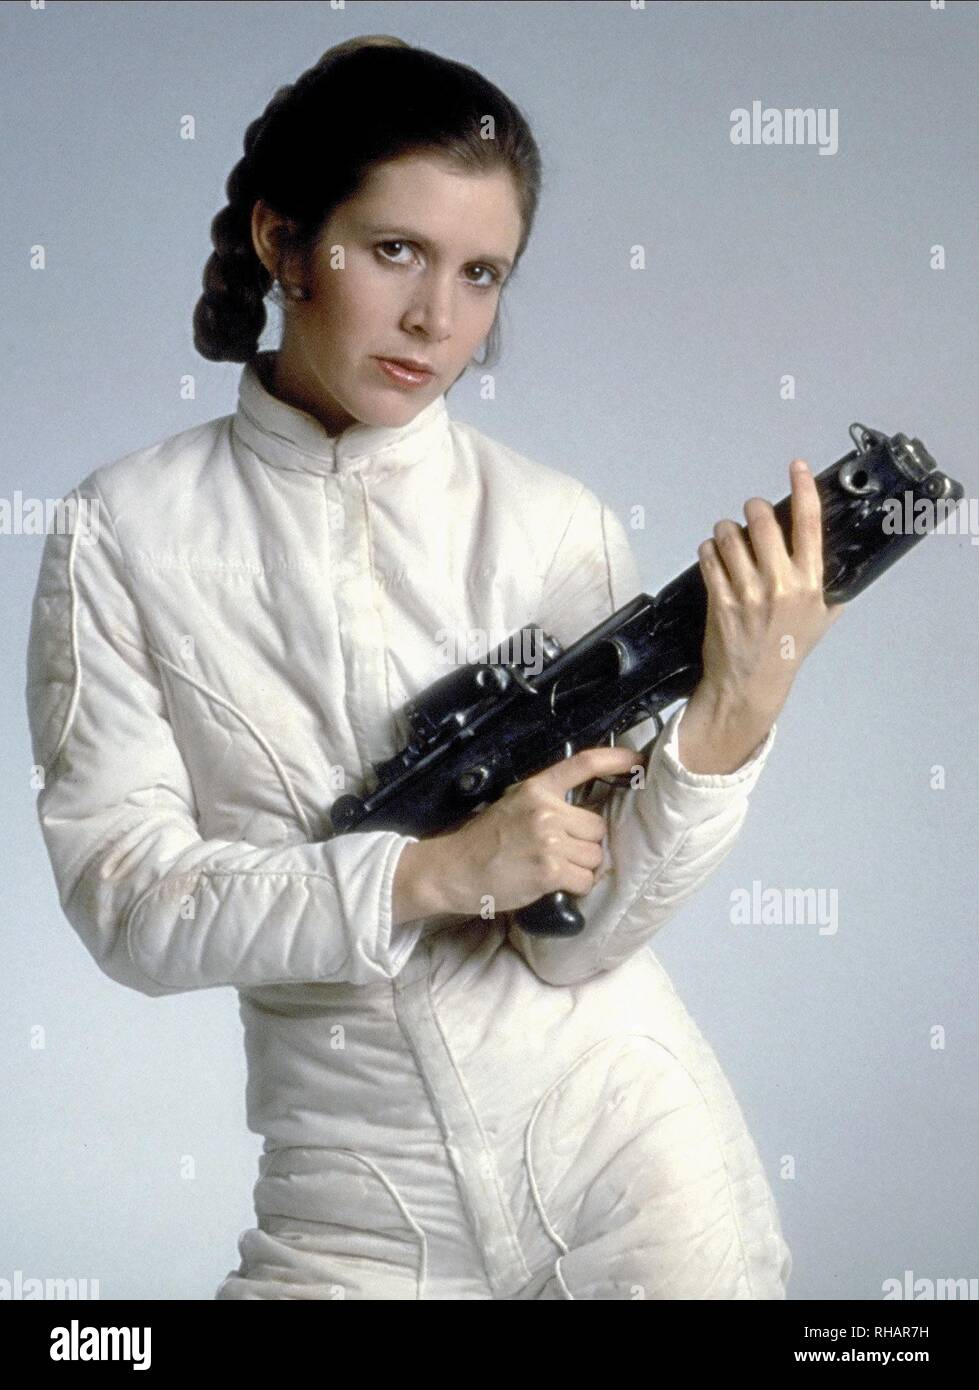 CARRIE FISHER, STAR WARS: EPISODE V - THE EMPIRE STRIKES BACK, 1980 - Stock Image